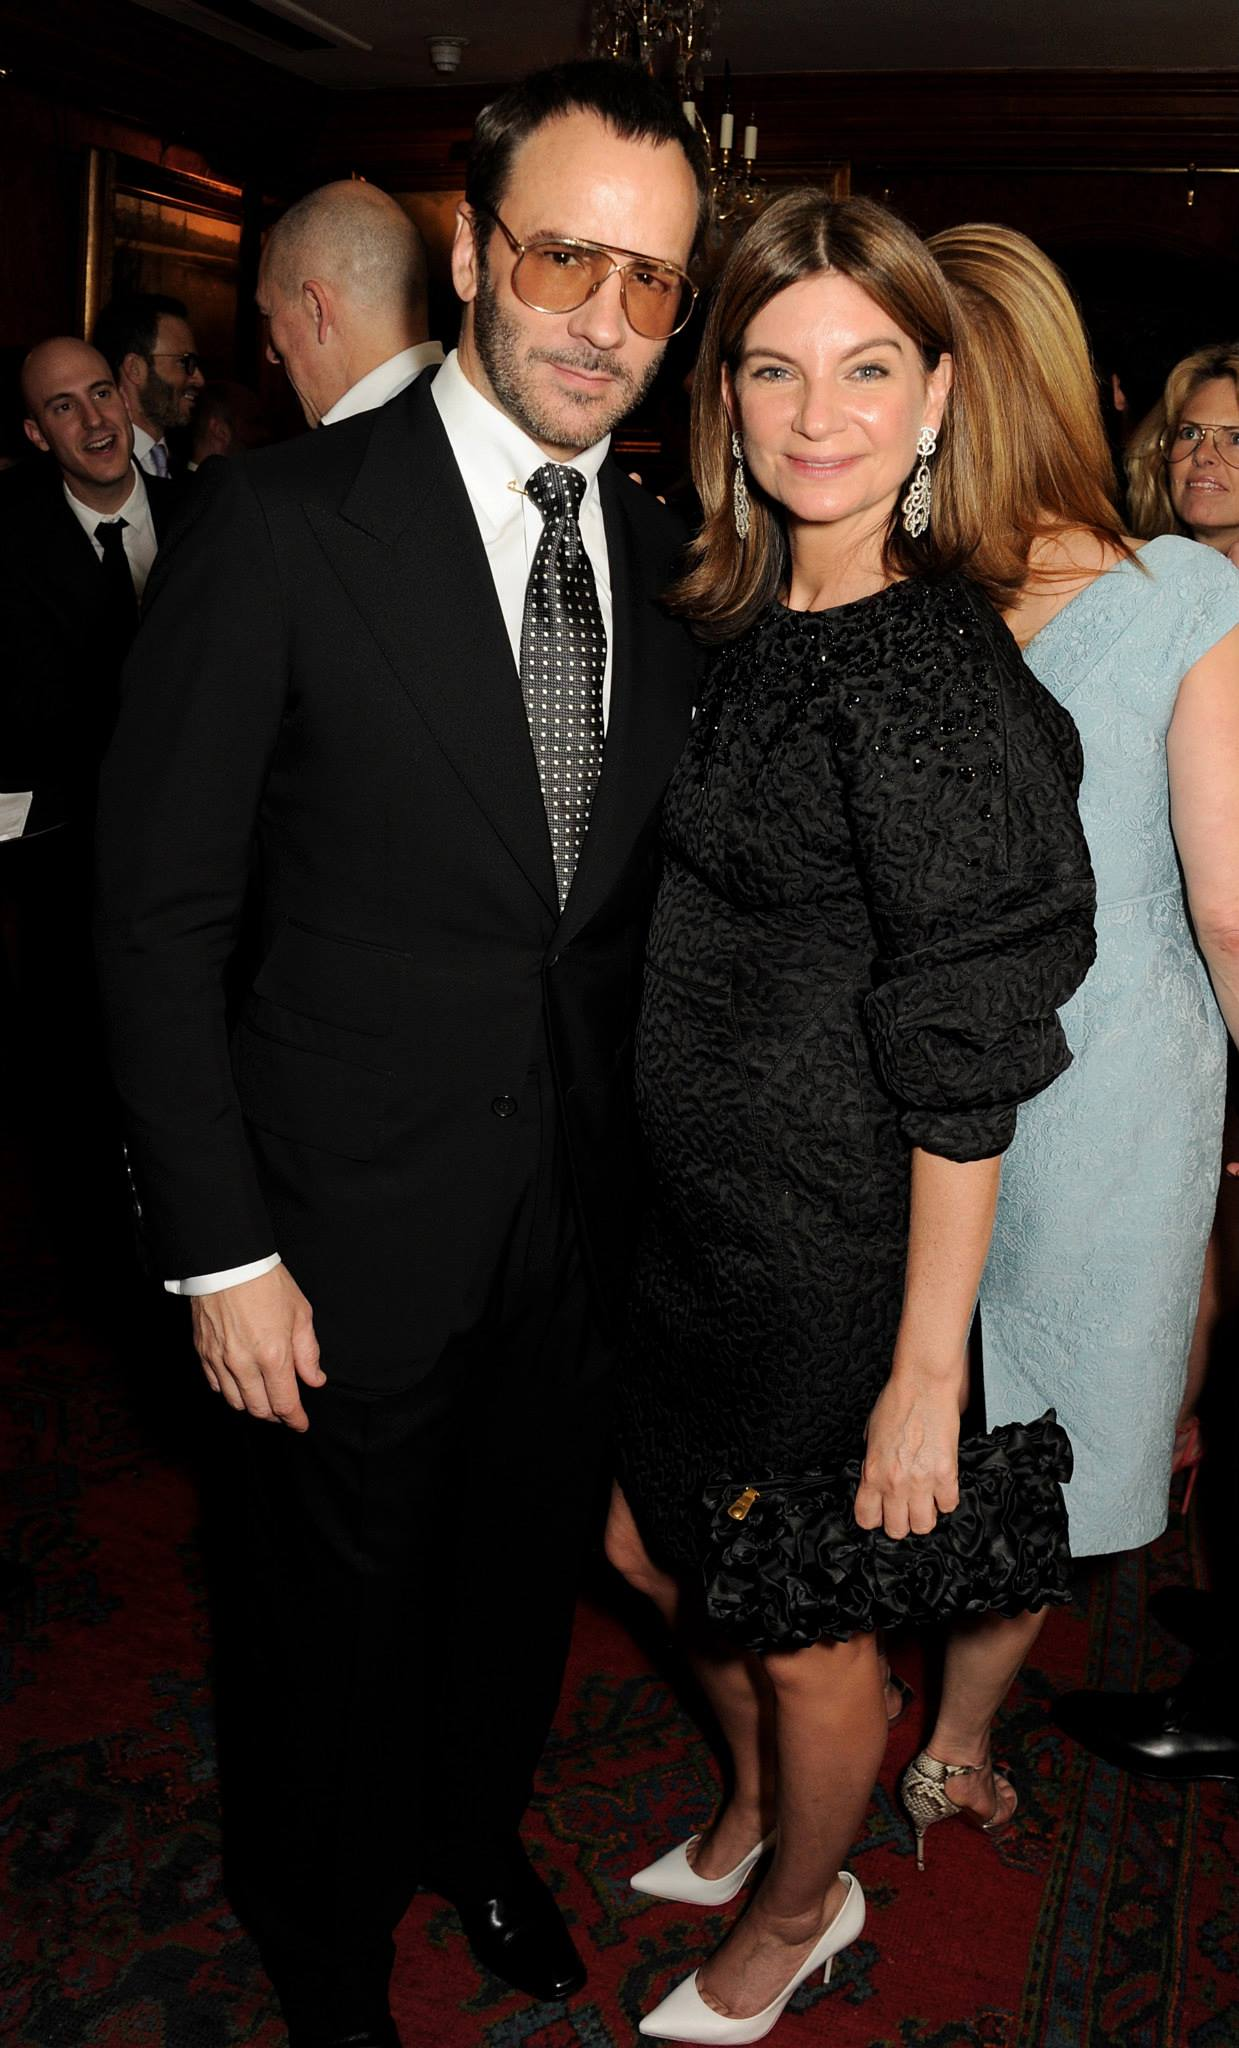 Tom Ford with Natalie Massenet